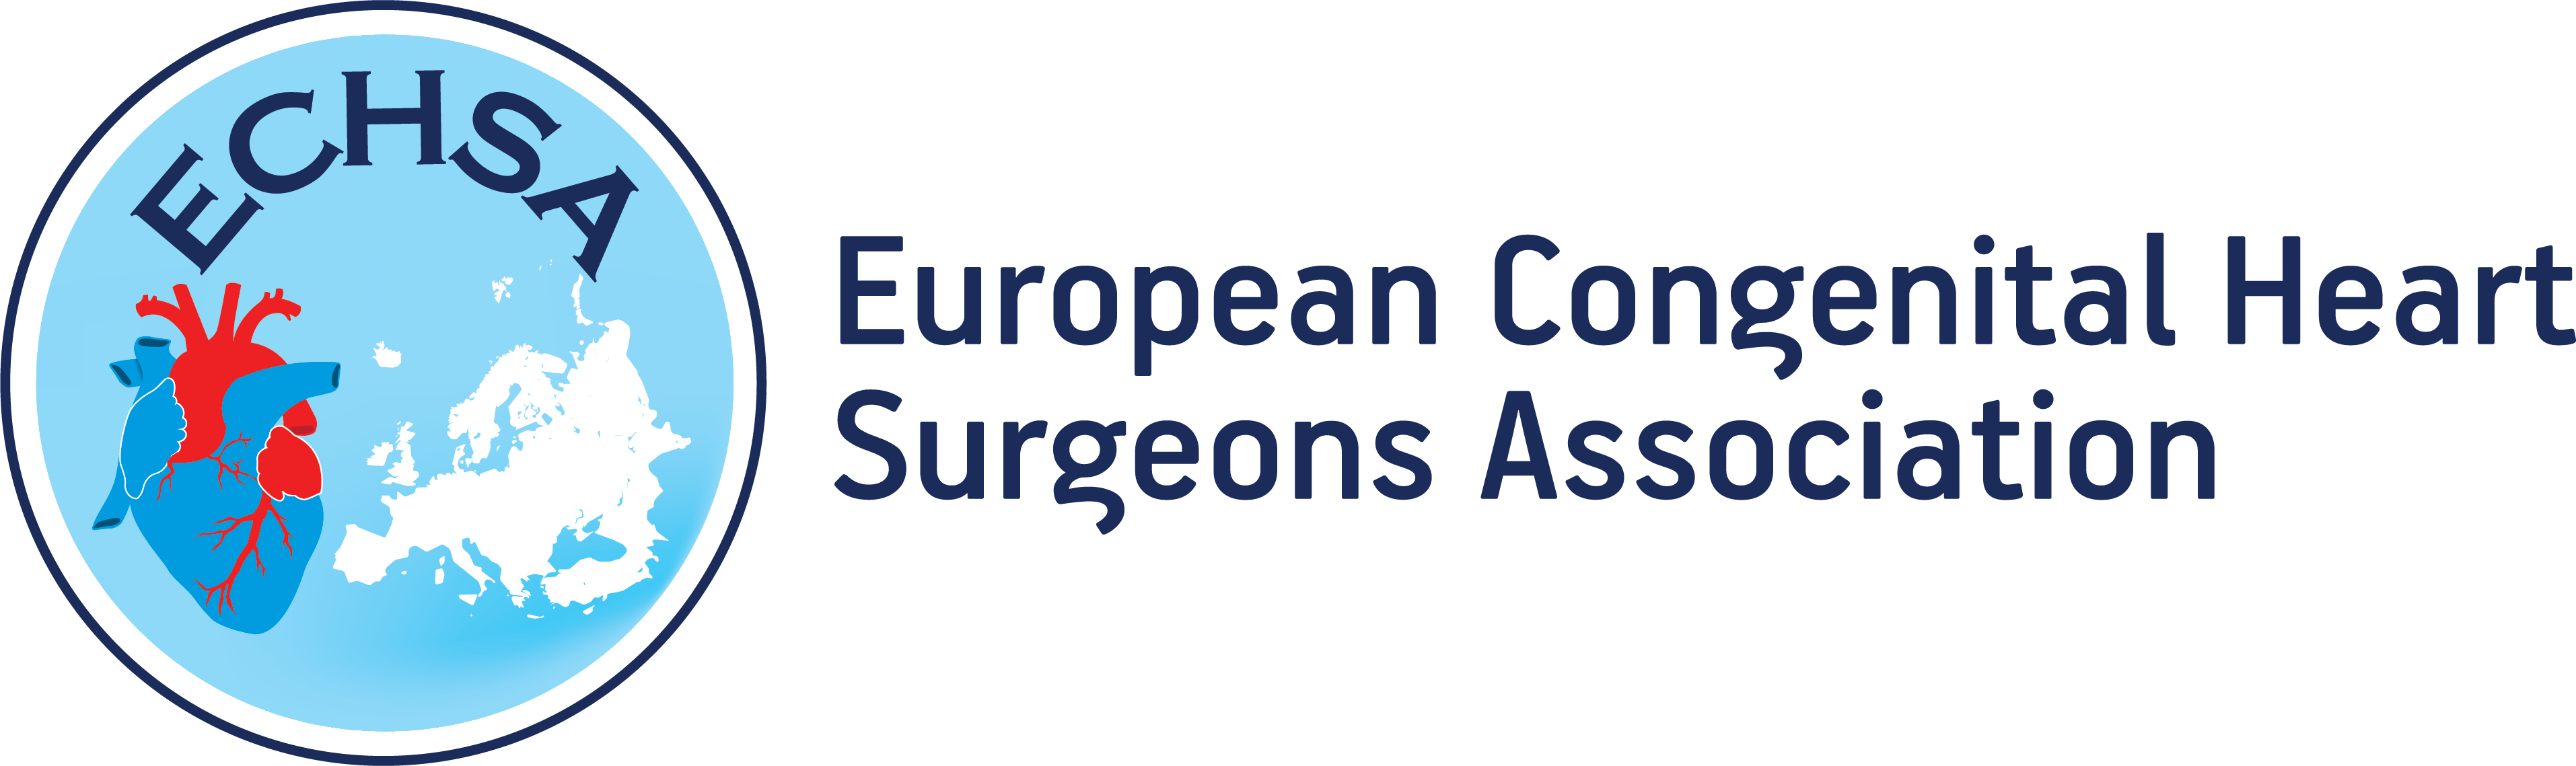 Echsa European Congenital Heart Surgeons Association